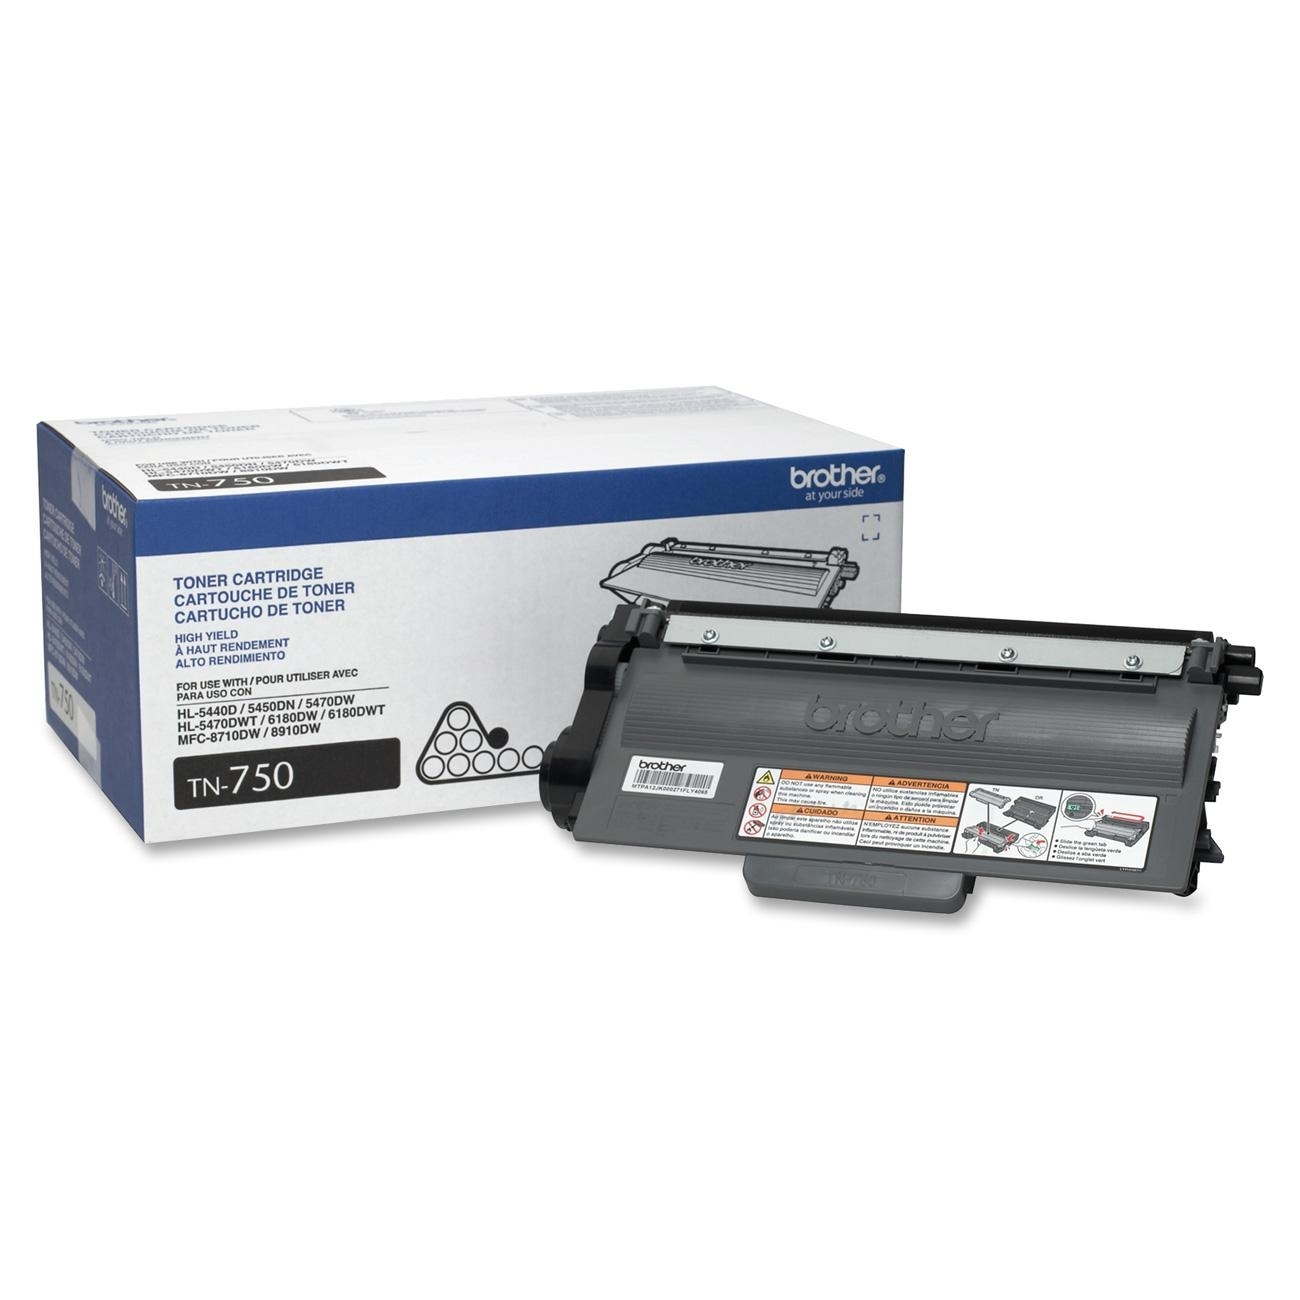 Brother TN750 (TN-750) Black Toner Cartridge - High Yield